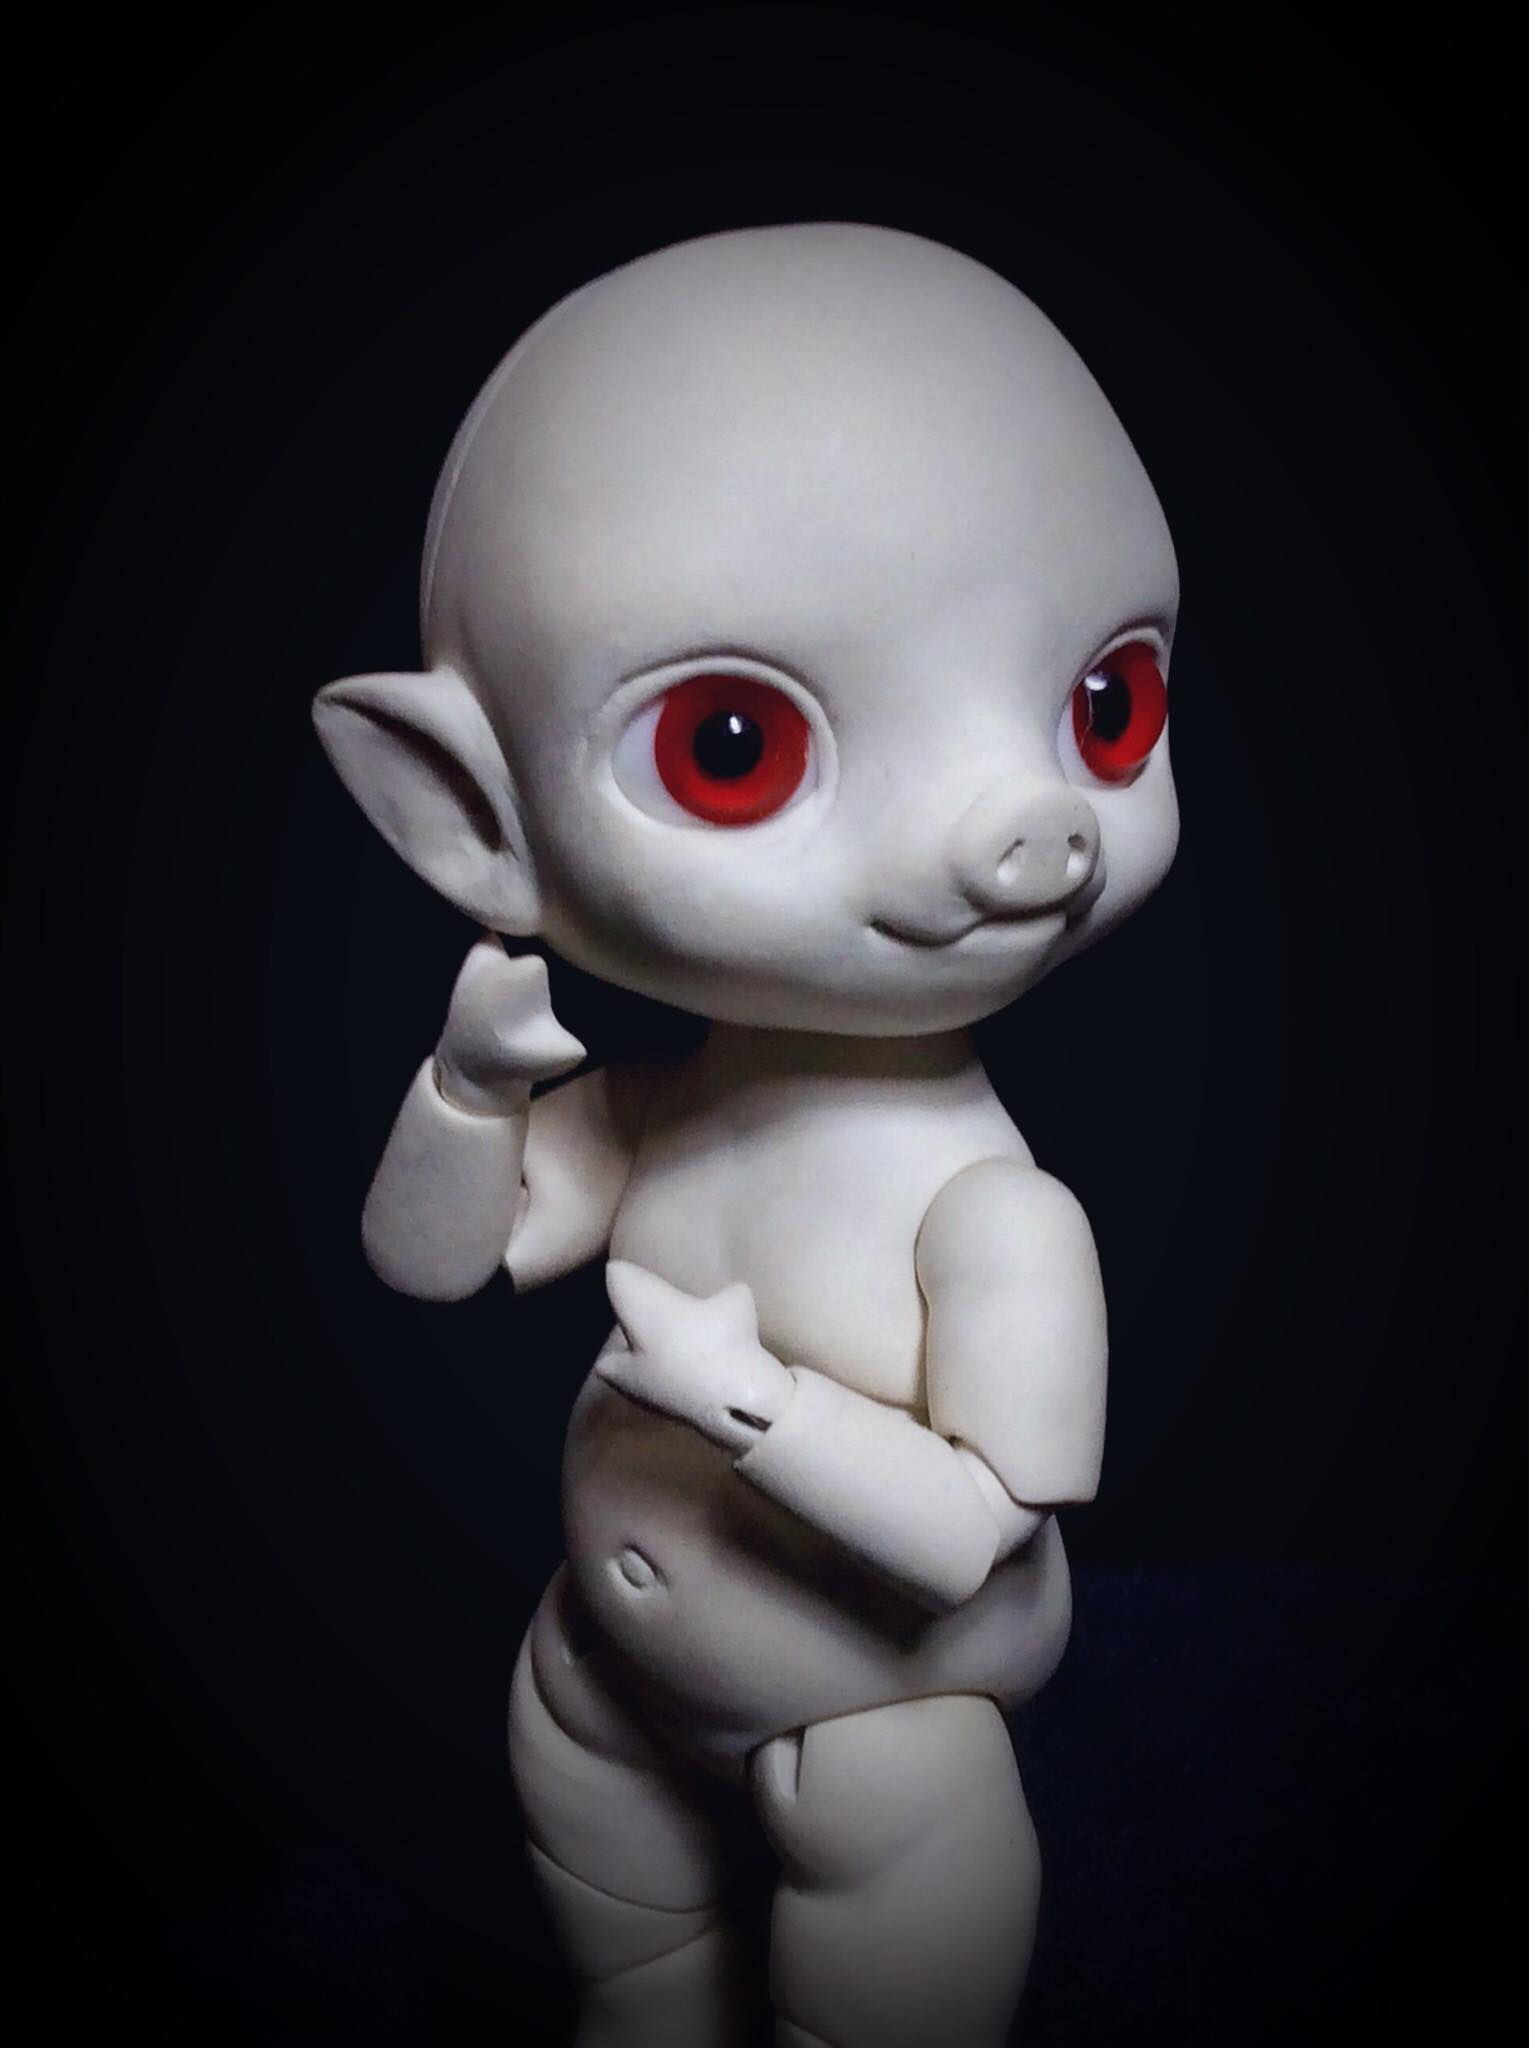 molding-and-casting-a-bjd-doll-02.jpg